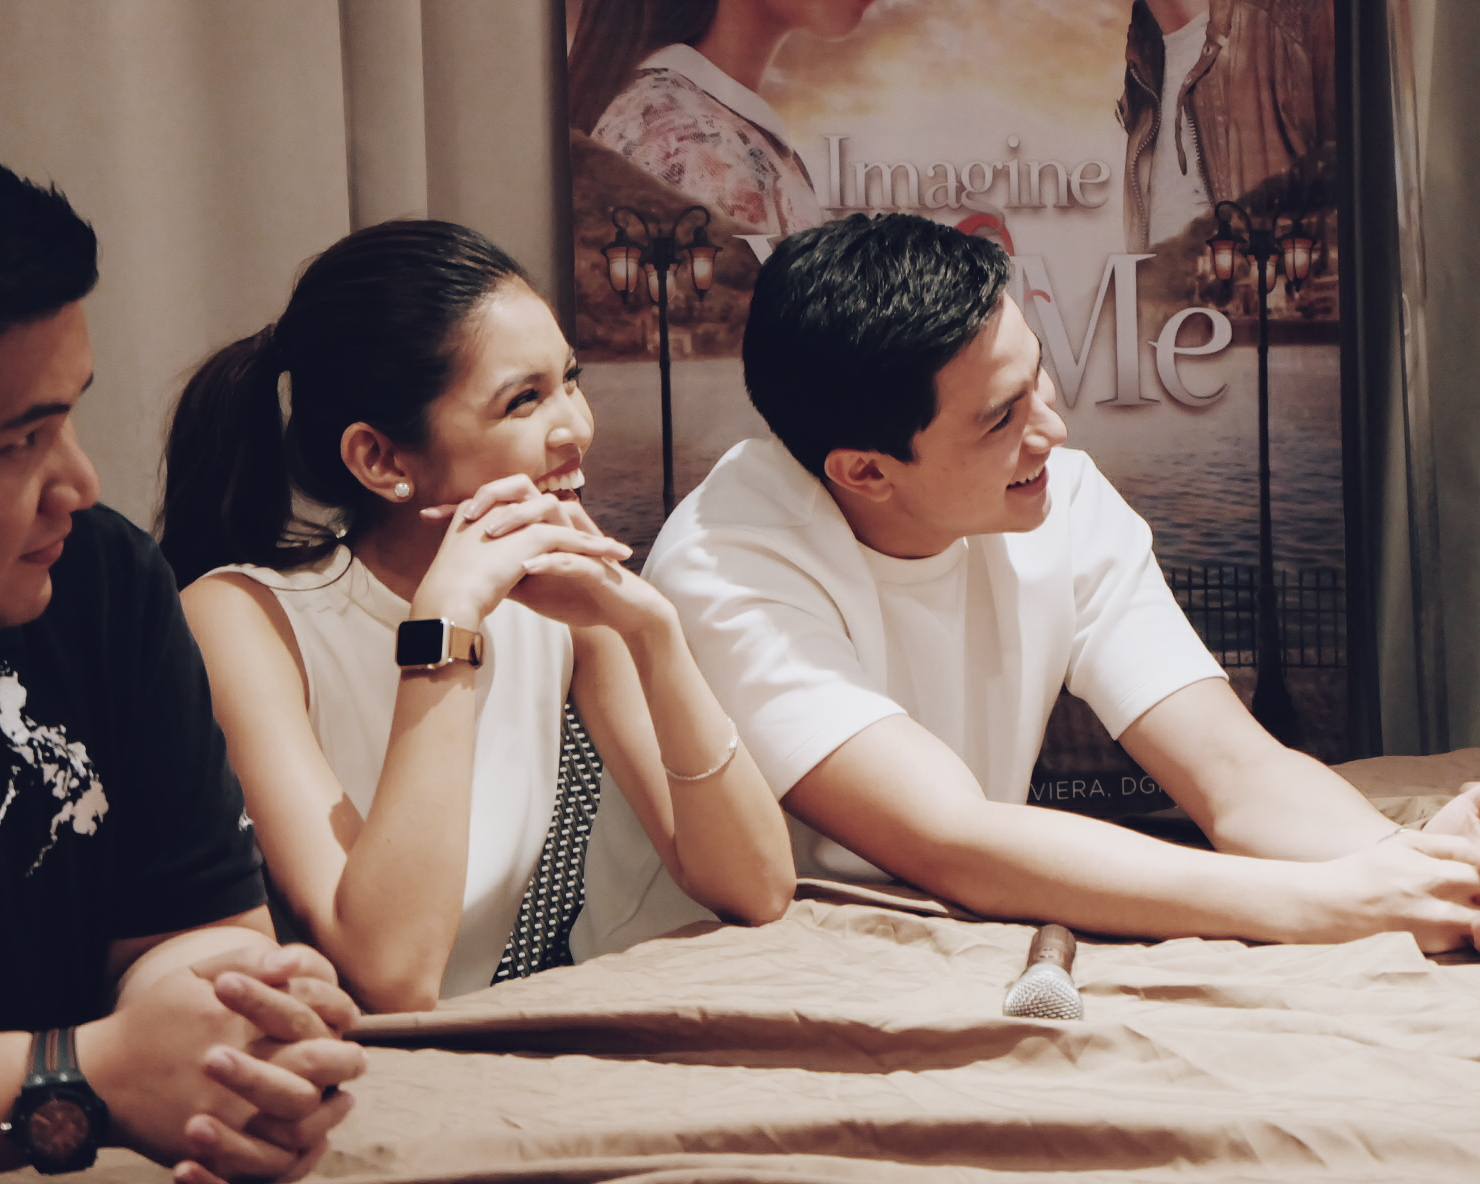 imagine you and me blogcon aldub